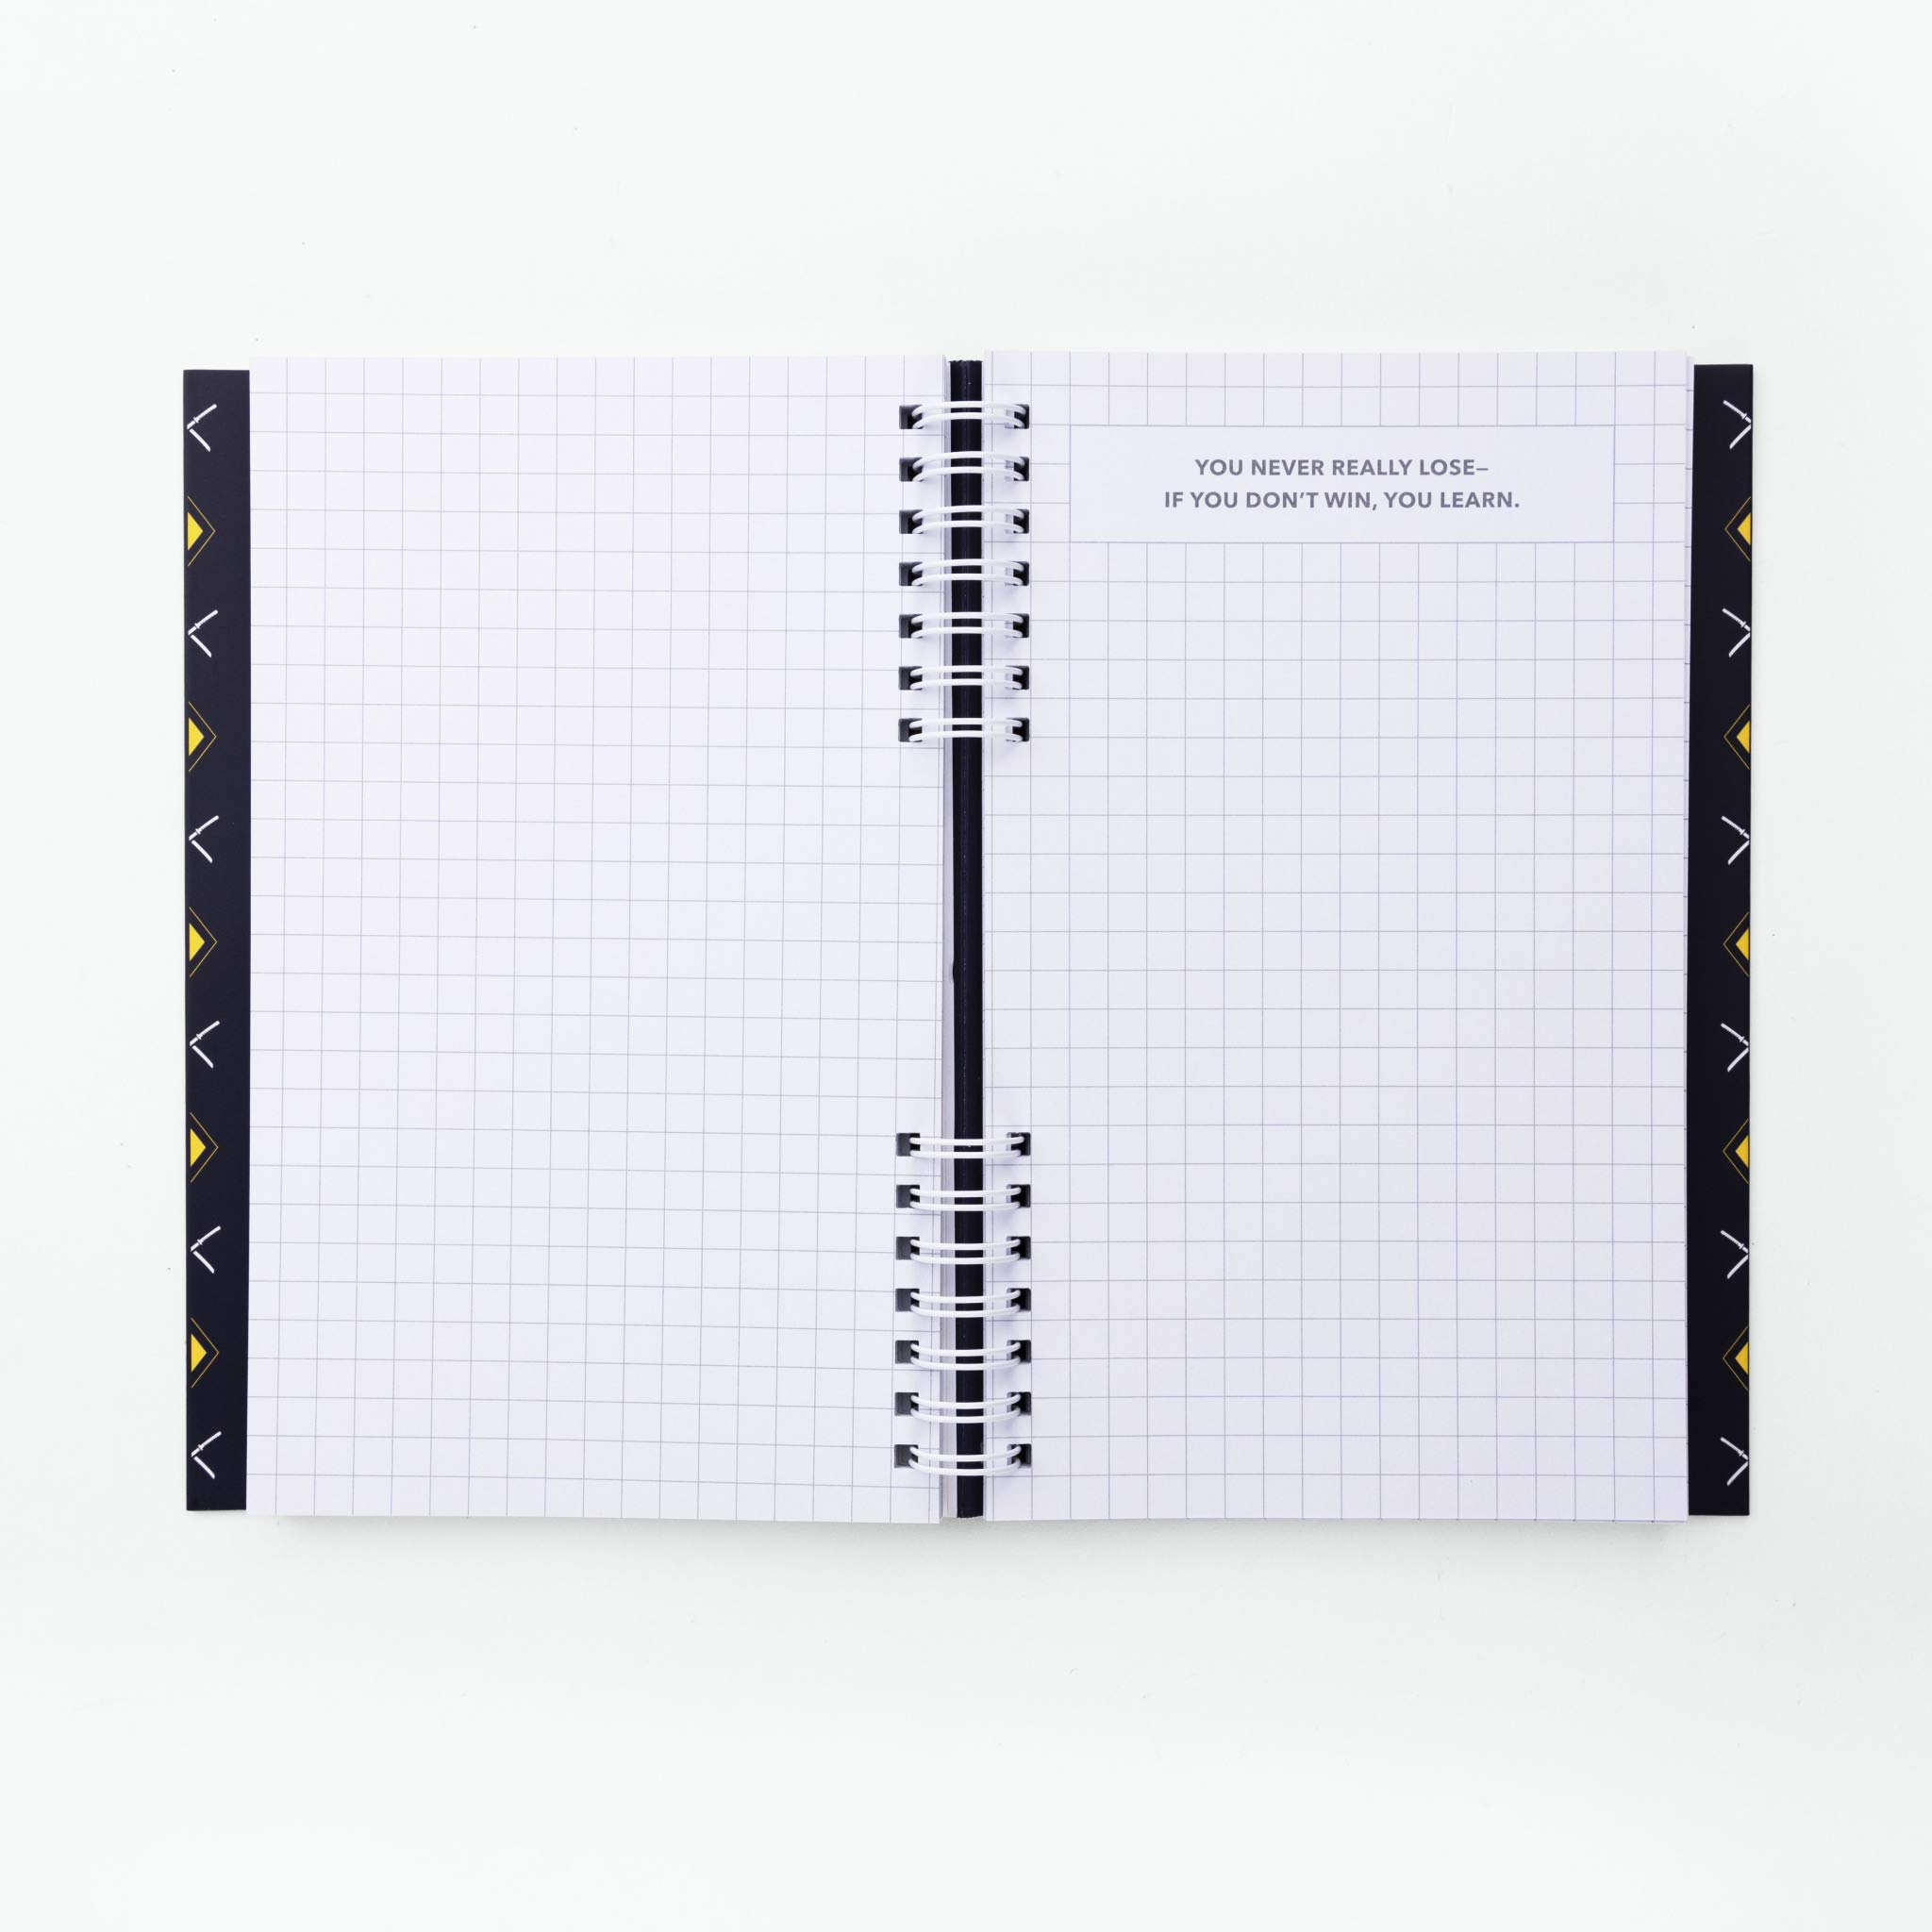 Amazon.com: Ninja Notebook: Notebook with Stickers and Tips ...